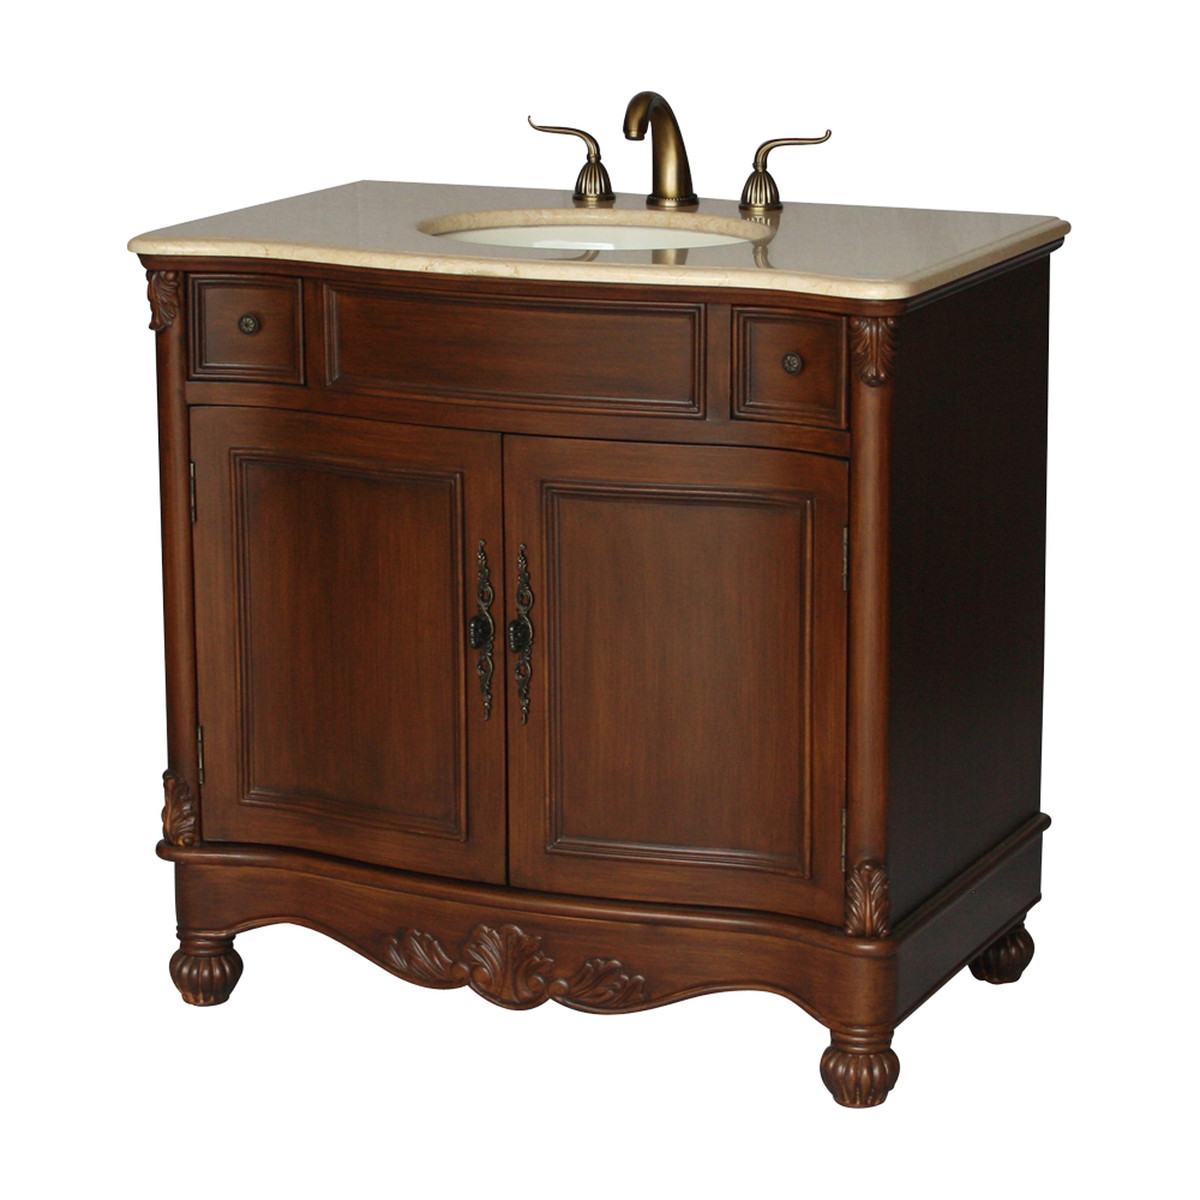 "36"" Adelina Antique Style Single Sink Bathroom Vanity with Beige Stone Countertop and Walnut Finish"